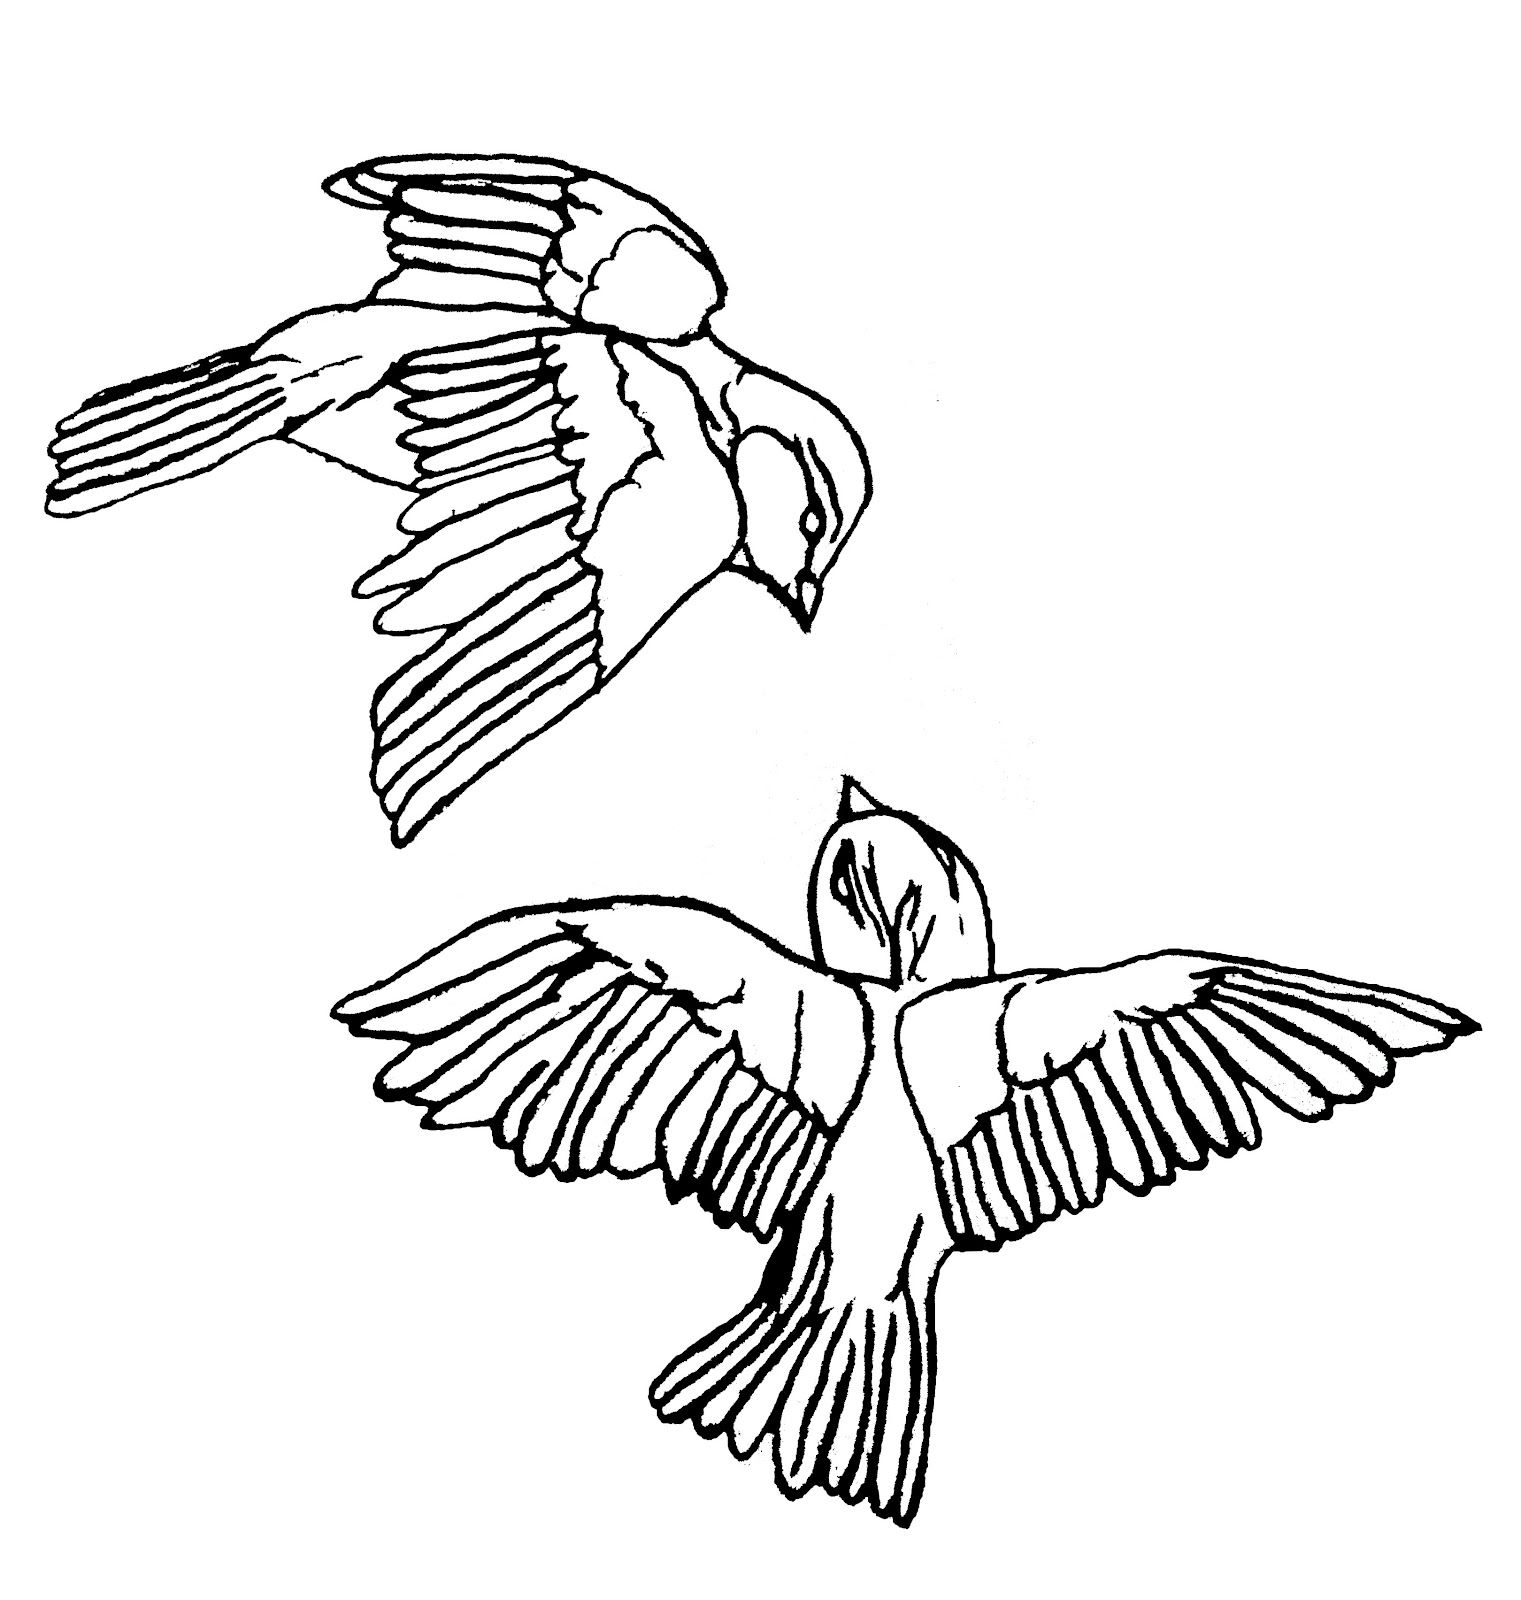 bird line drawing roman - Google Search | Love bird tattoo ...